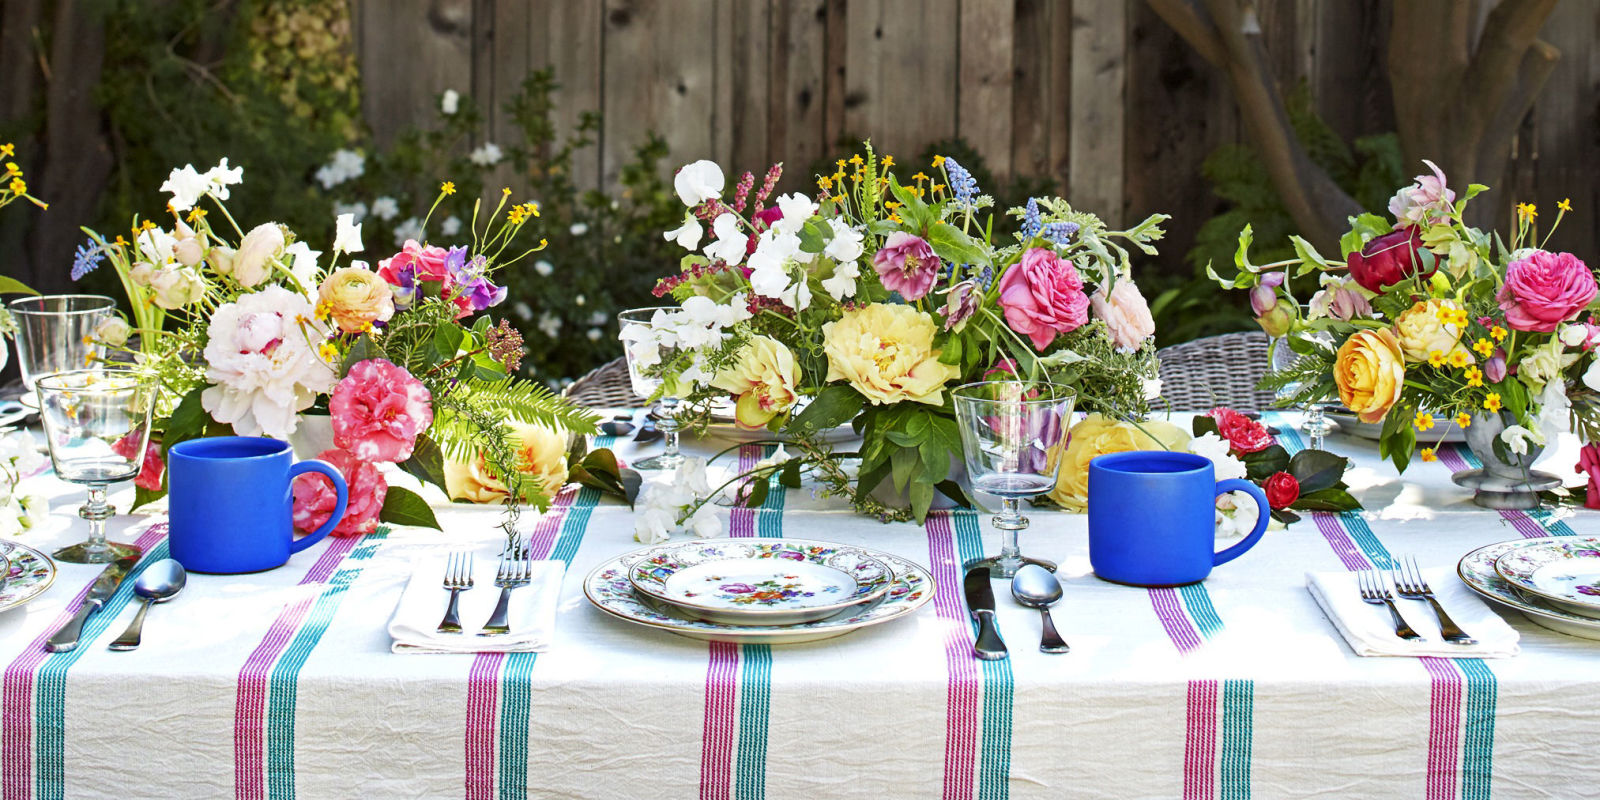 Elegant birthday table decorations - Tablescapes